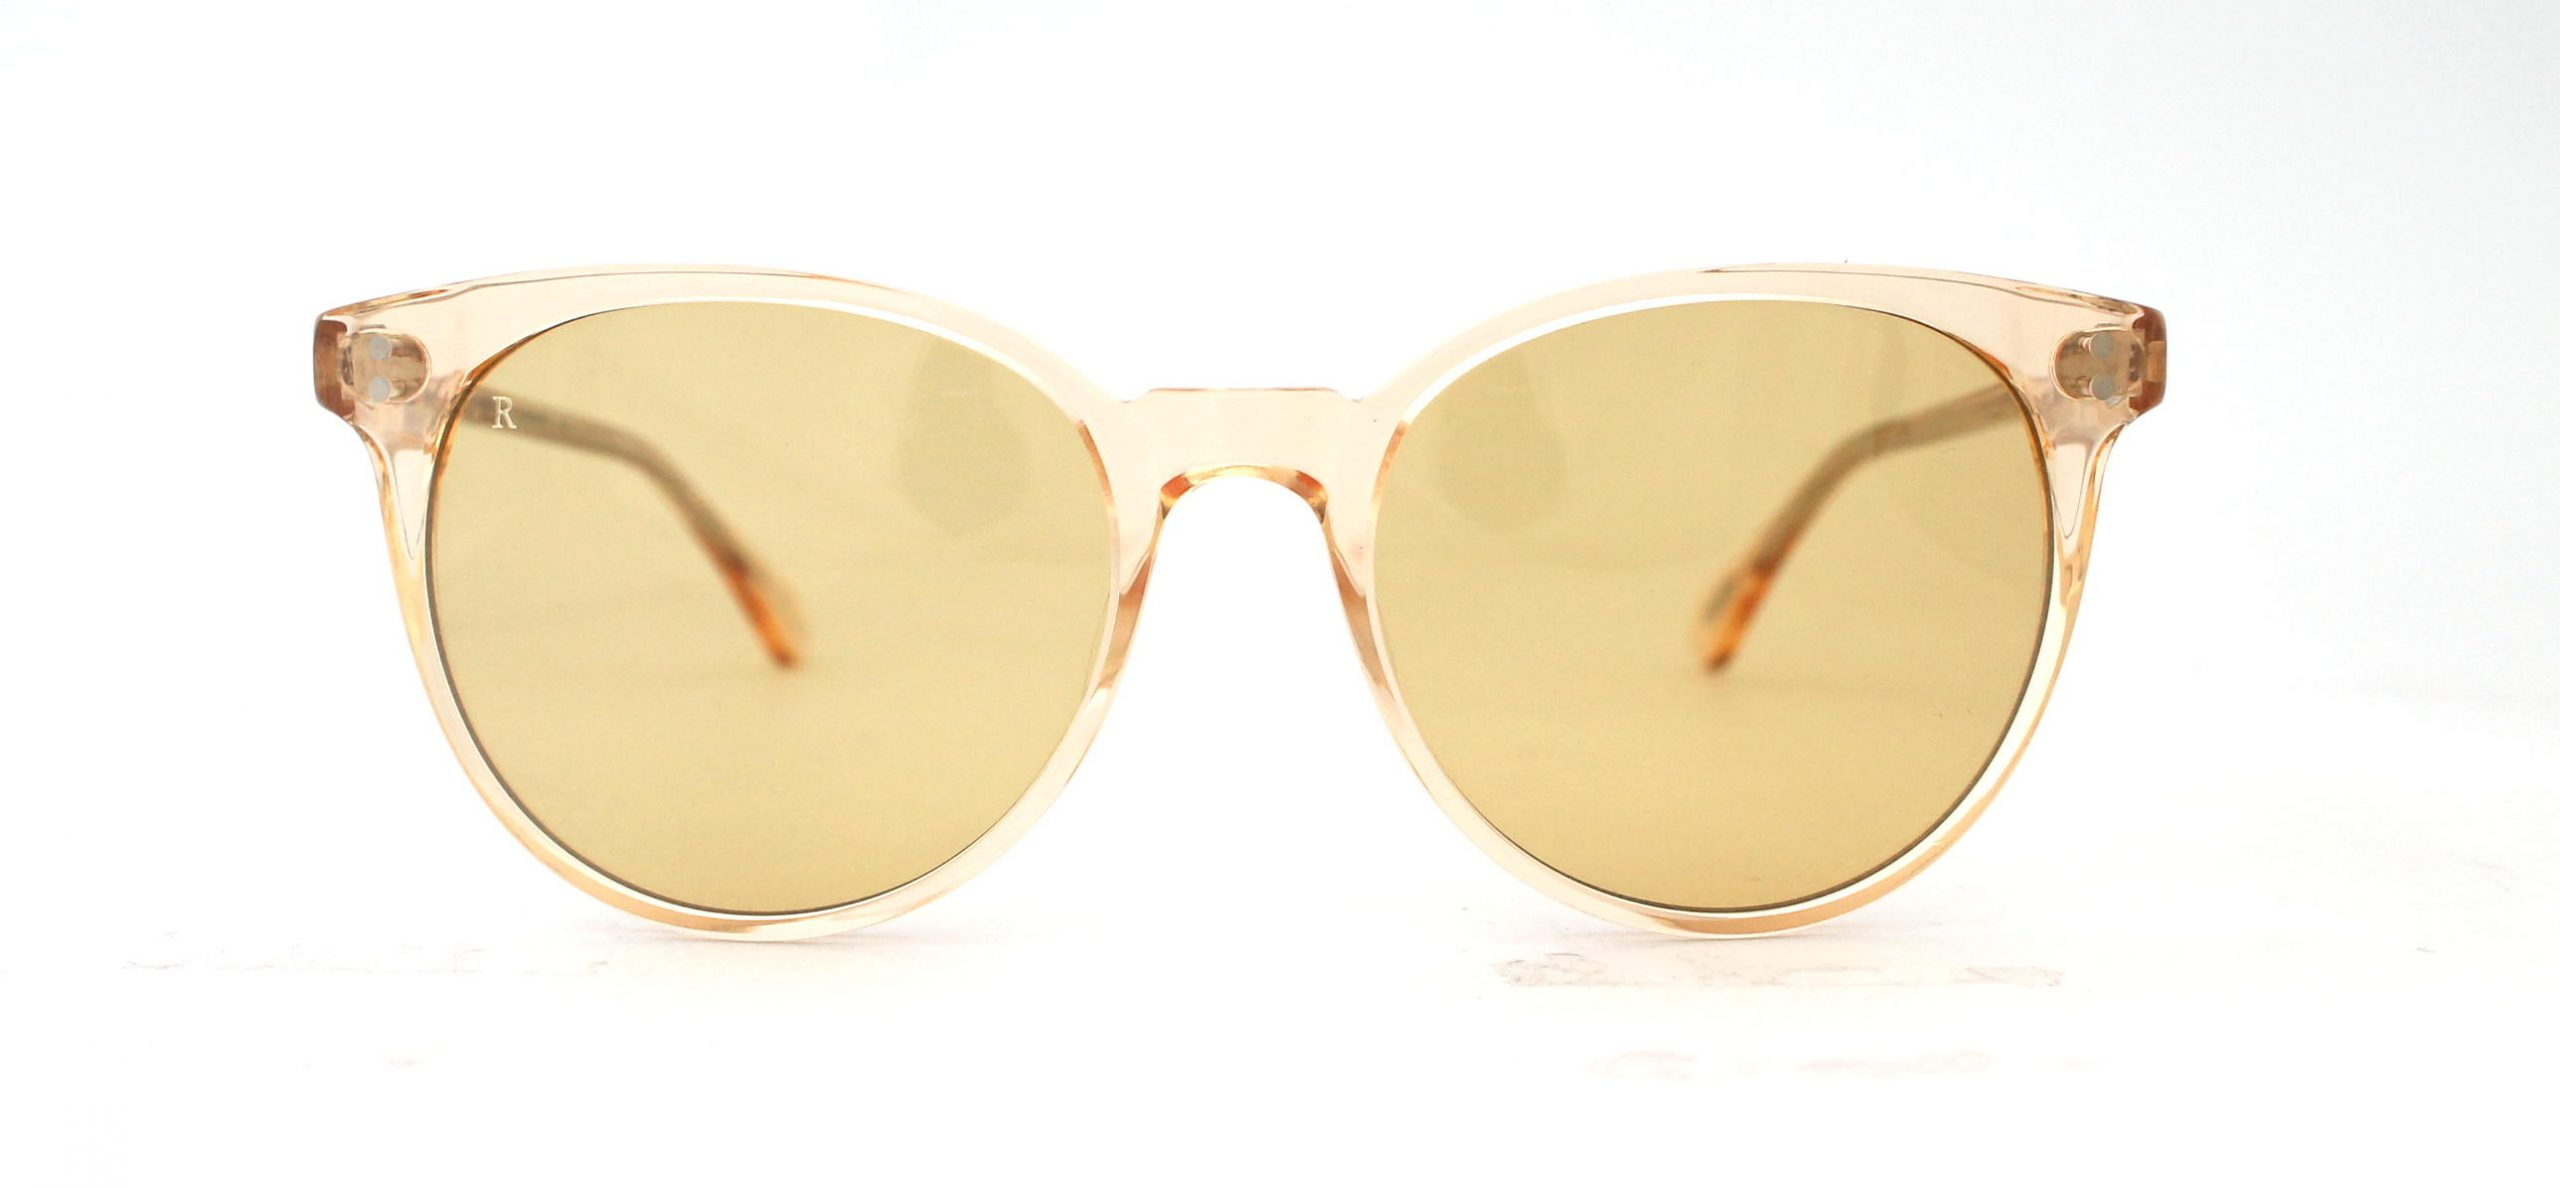 Raen - Norie Champagne Crystal Yellow